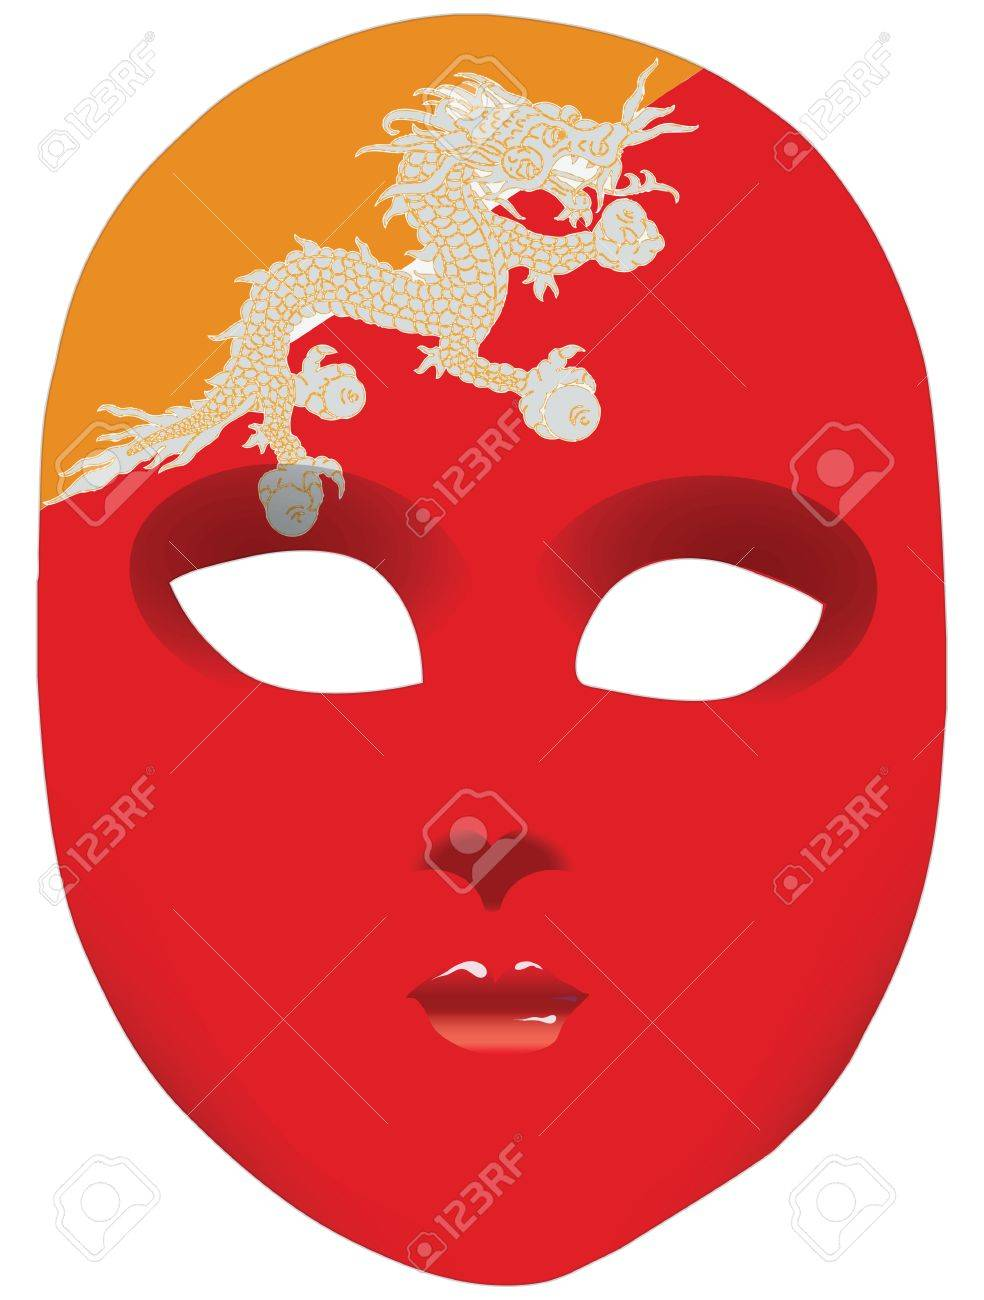 Classic Mask With Symbols Of Statehood Of Bhutan Royalty Free